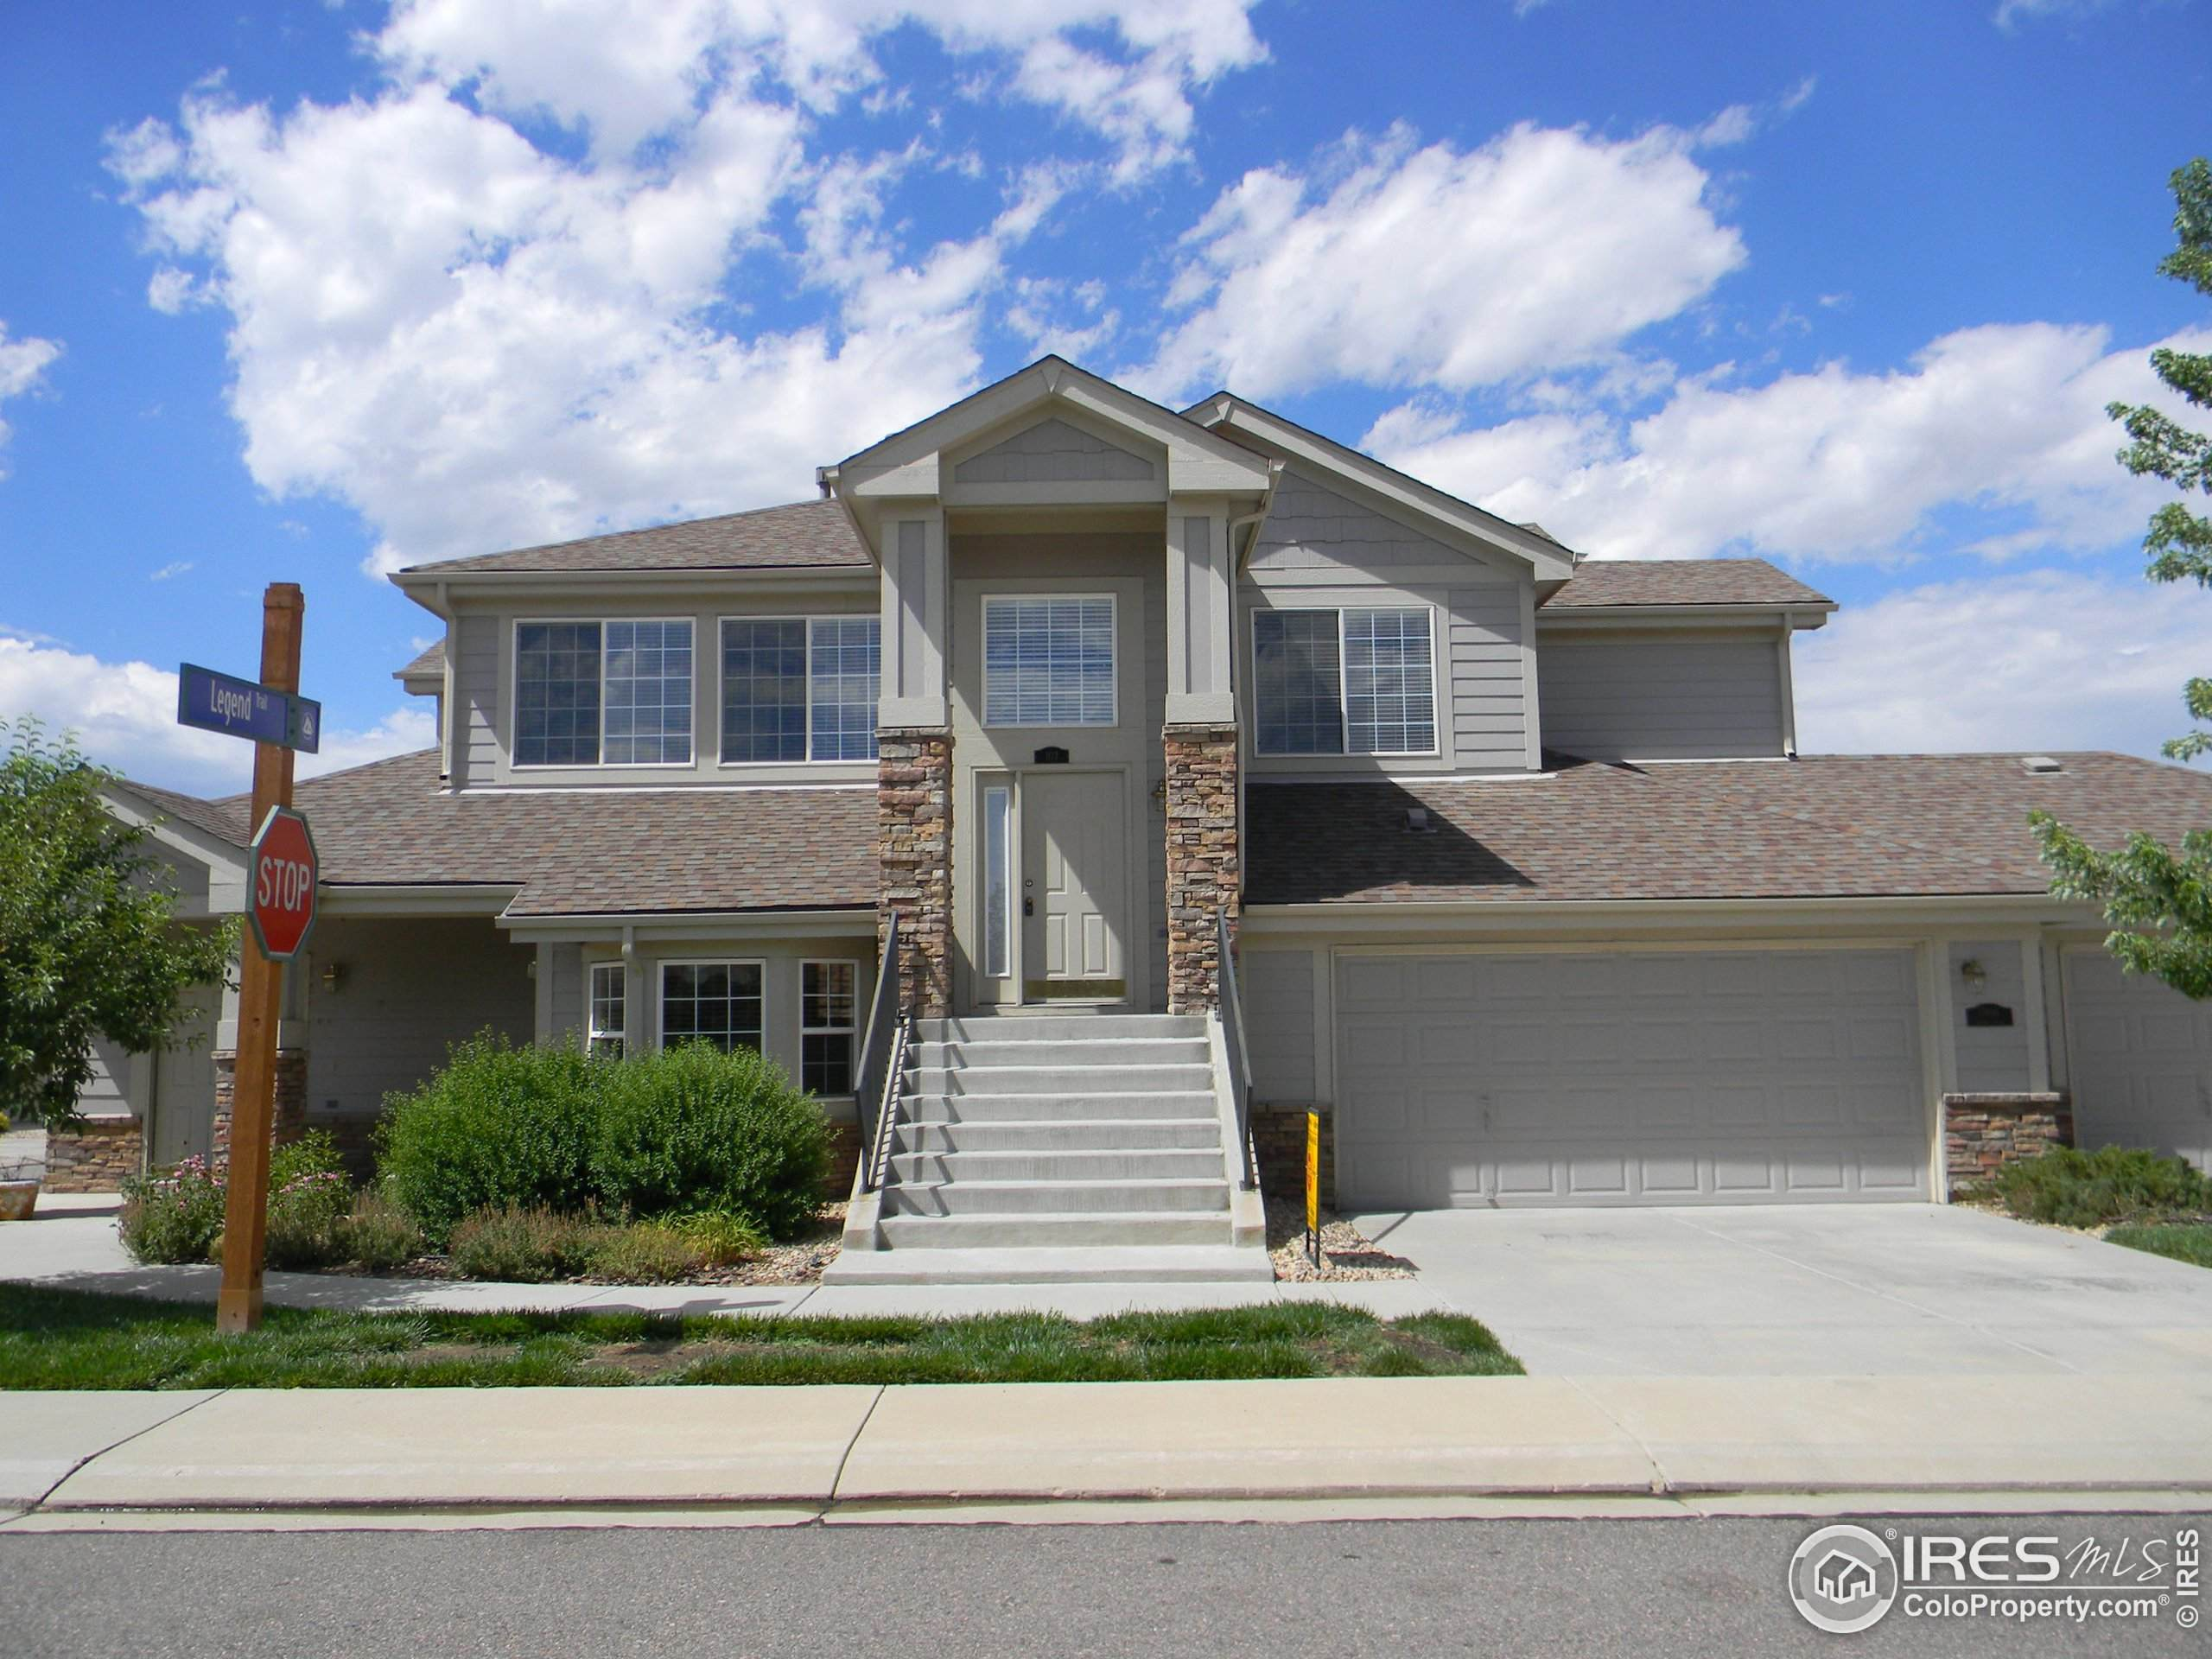 4737 W 69th Ave, Westminster, CO 80030 (MLS #934469) :: Colorado Home Finder Realty